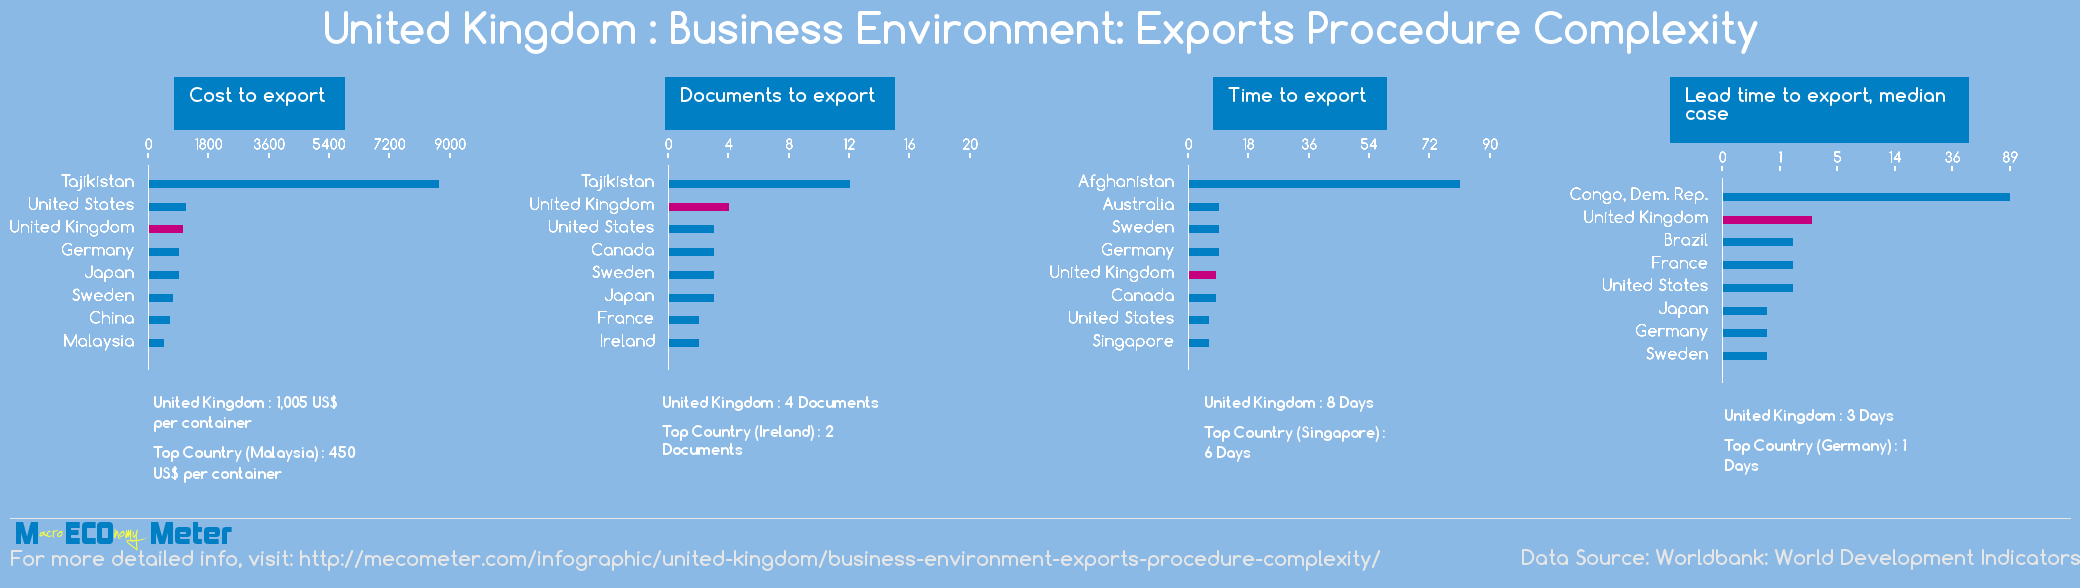 United Kingdom : Business Environment: Exports Procedure Complexity